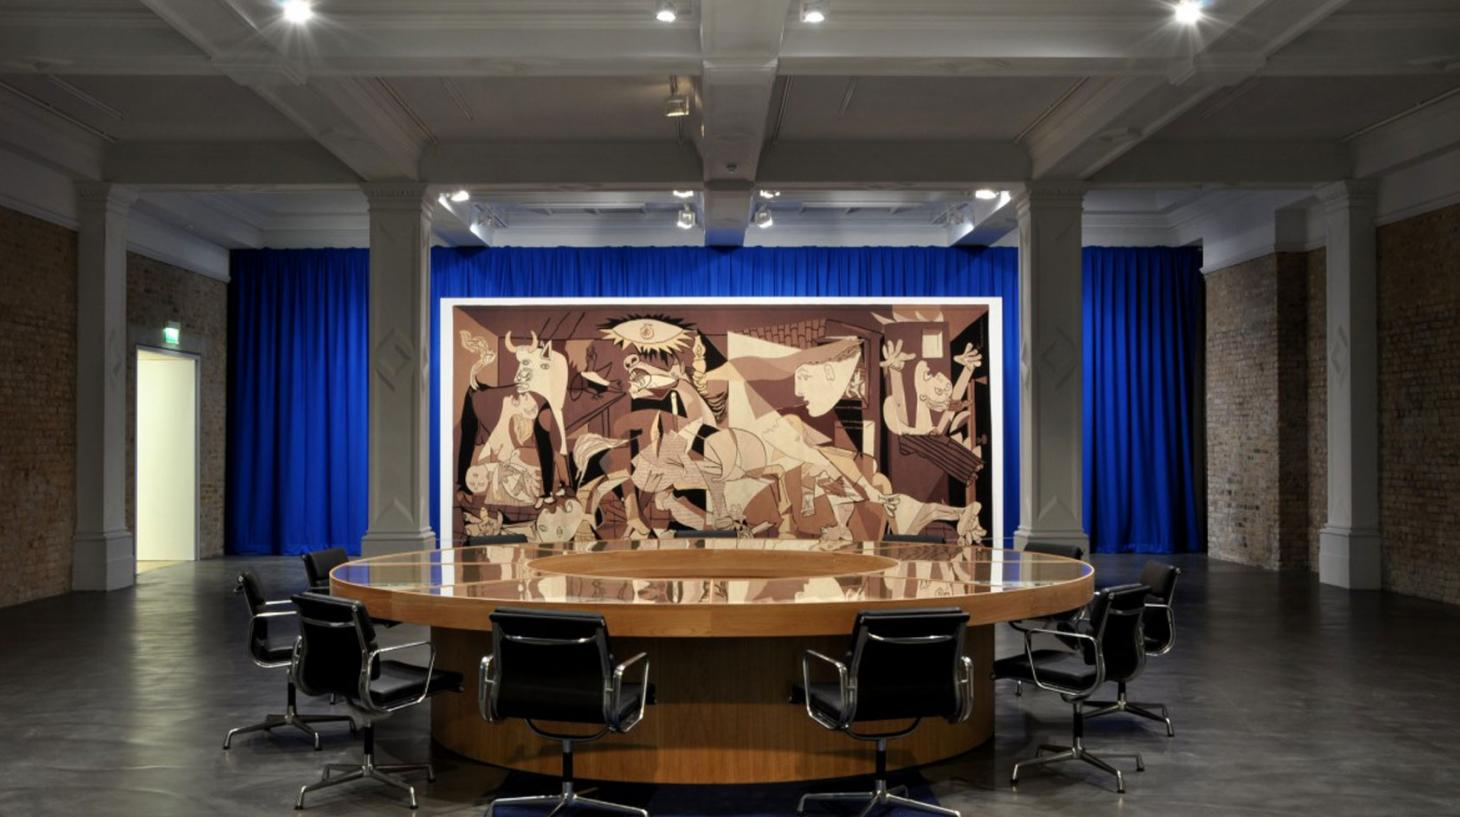 Picasso's Guernica as tapestry, featured in Nature of the Beast, Goshka Macuga installation, 2009. Courtesy of Whitechapel Gallery.